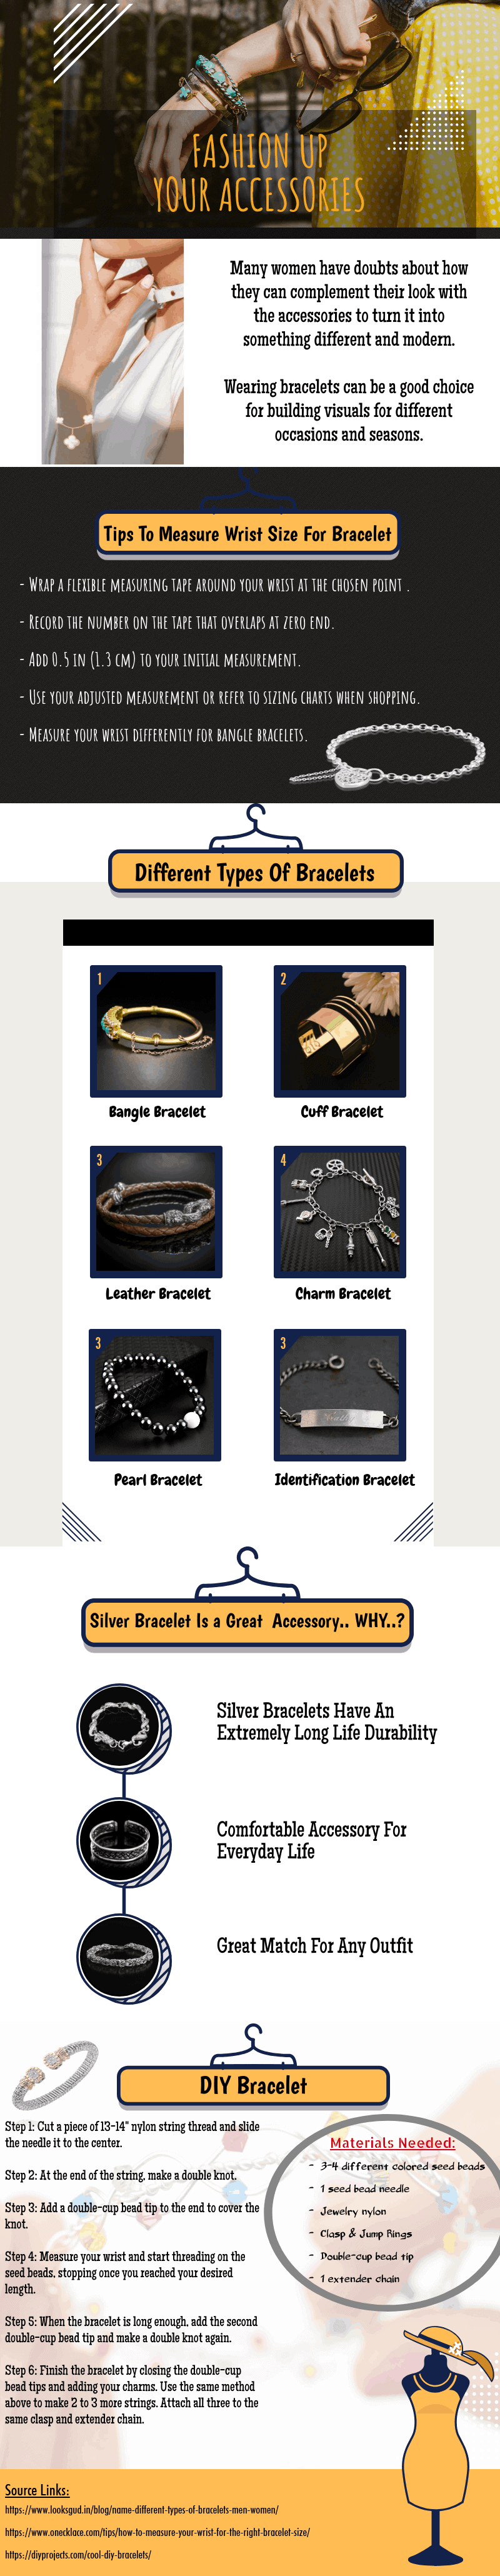 Tips for choosing the right bracelet